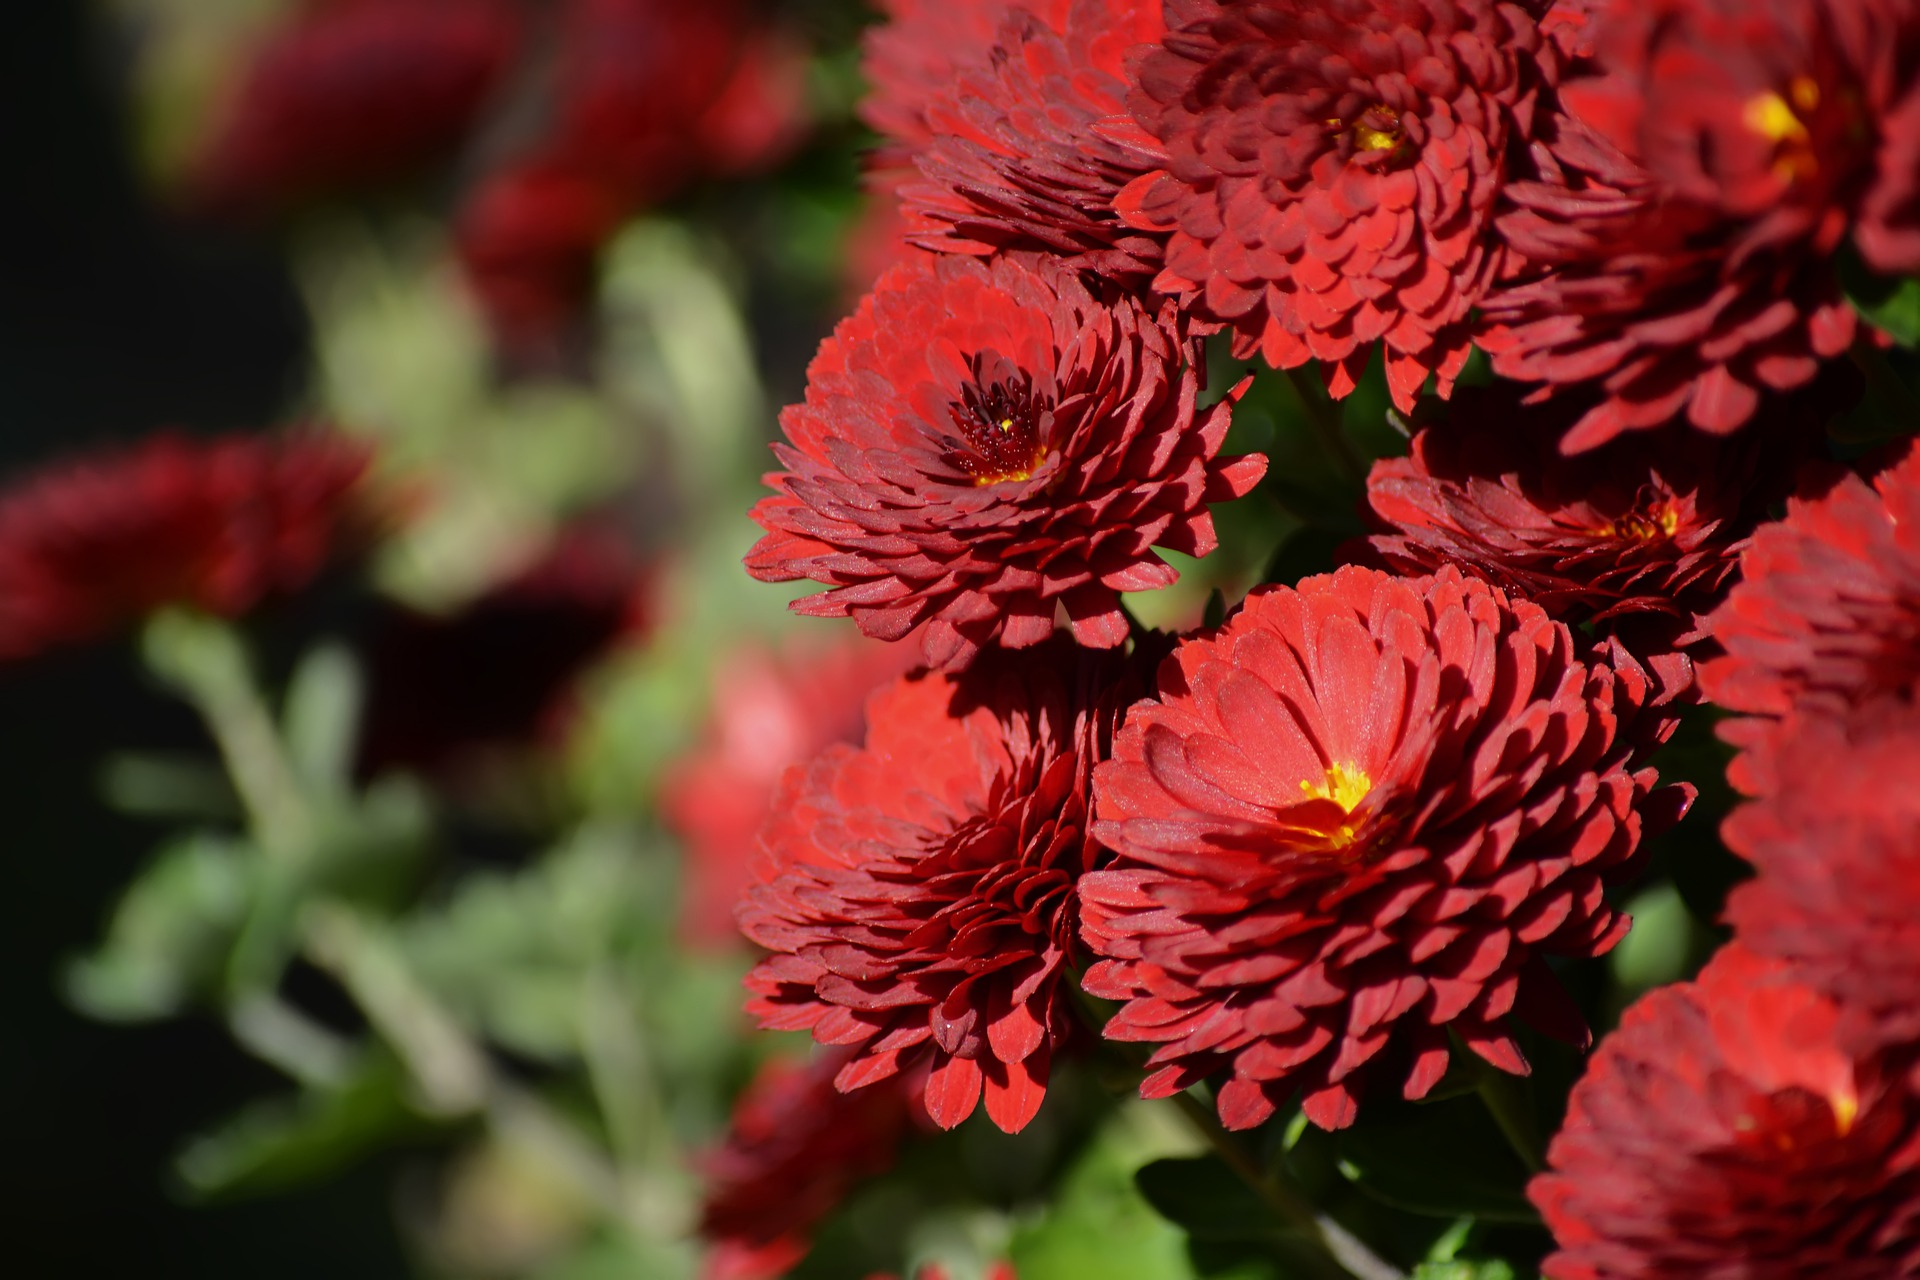 chrysanthemum-4583877_1920